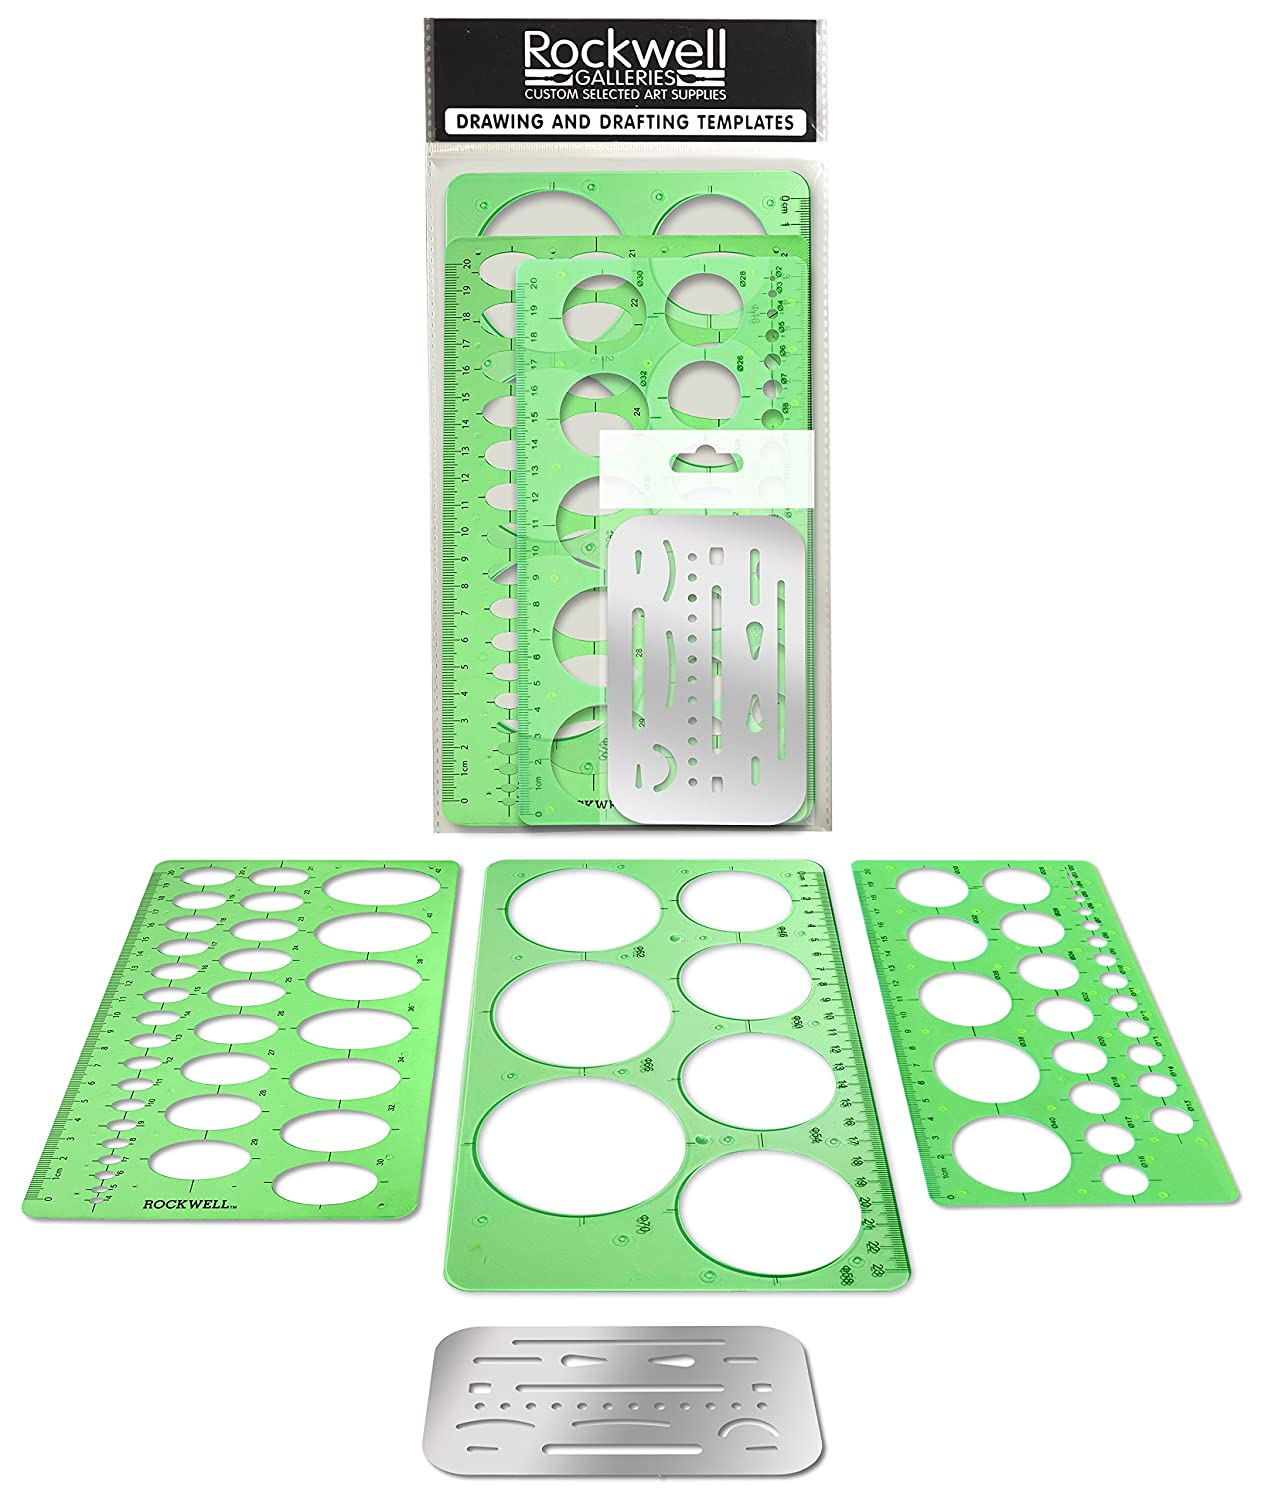 Rockwell Galleries - Circle Templates, Oval Template and Erasing Shield for Drawing, Drafting and Creating by Rockwell Galleries - for Home, Office, Creative Studio or Personal Drawing and Drafting. AWF Online Sales 4336946693